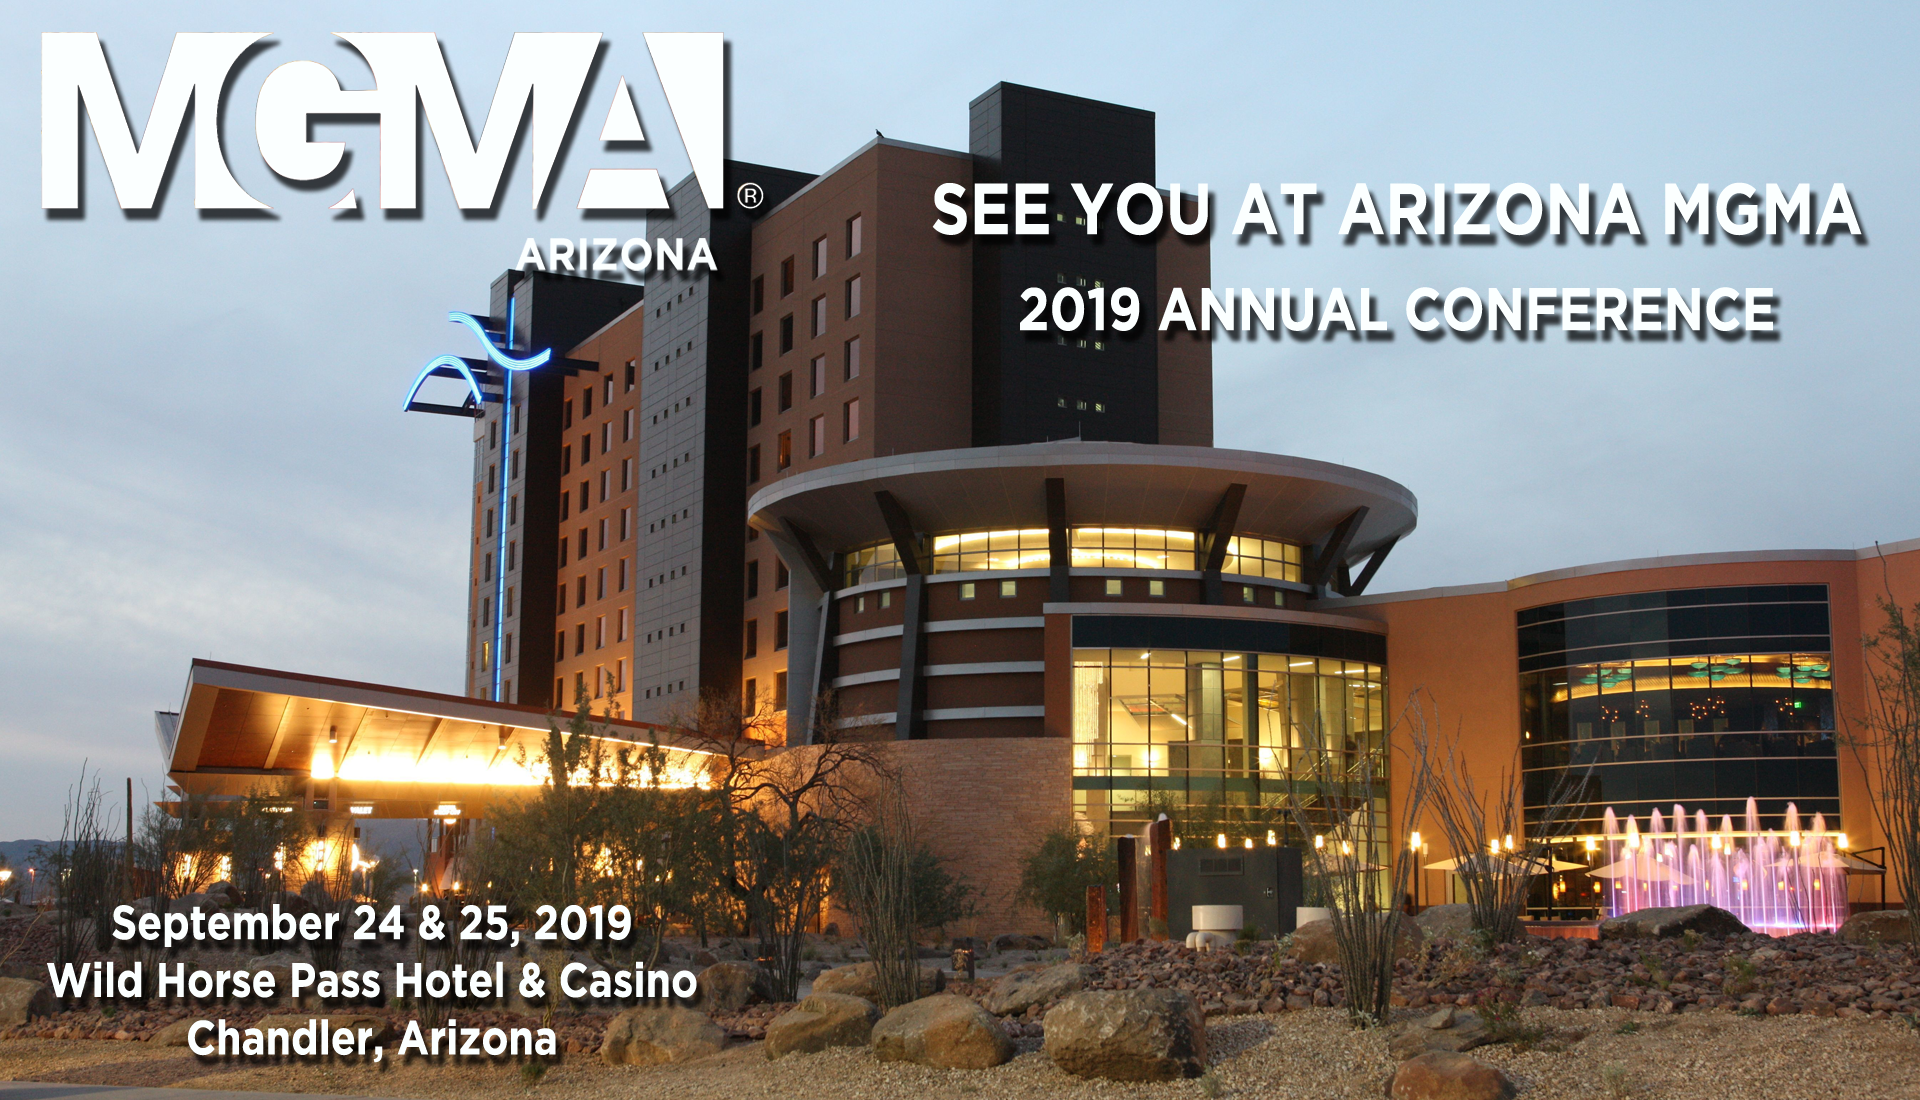 See you at Arizona MGMA 2019 Annual Conference September 24, 25, 2019 Wild Horse Pass Hotel and Casino, Chandler Arizona